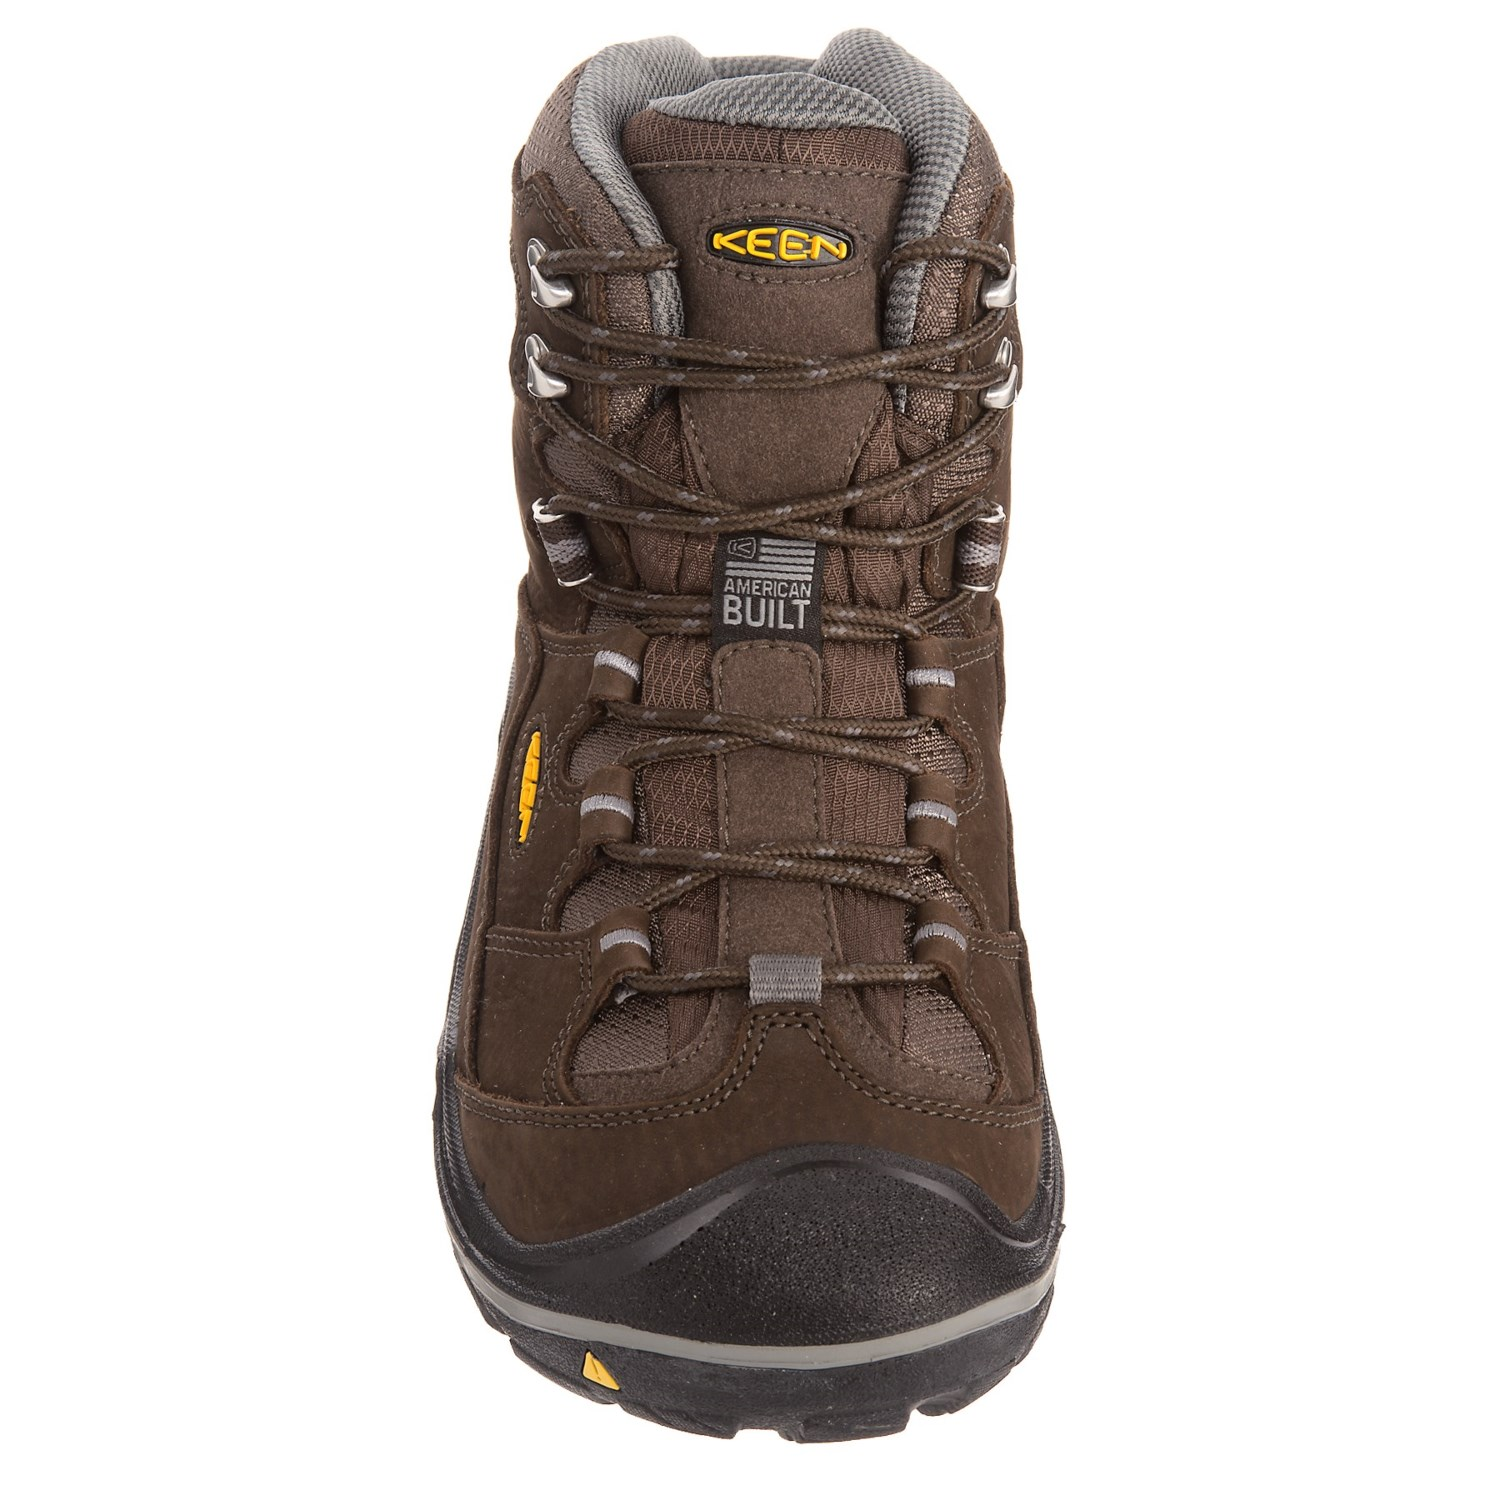 2109d03a3a4 Keen Durand Mid Hiking Boots - Waterproof (For Men)